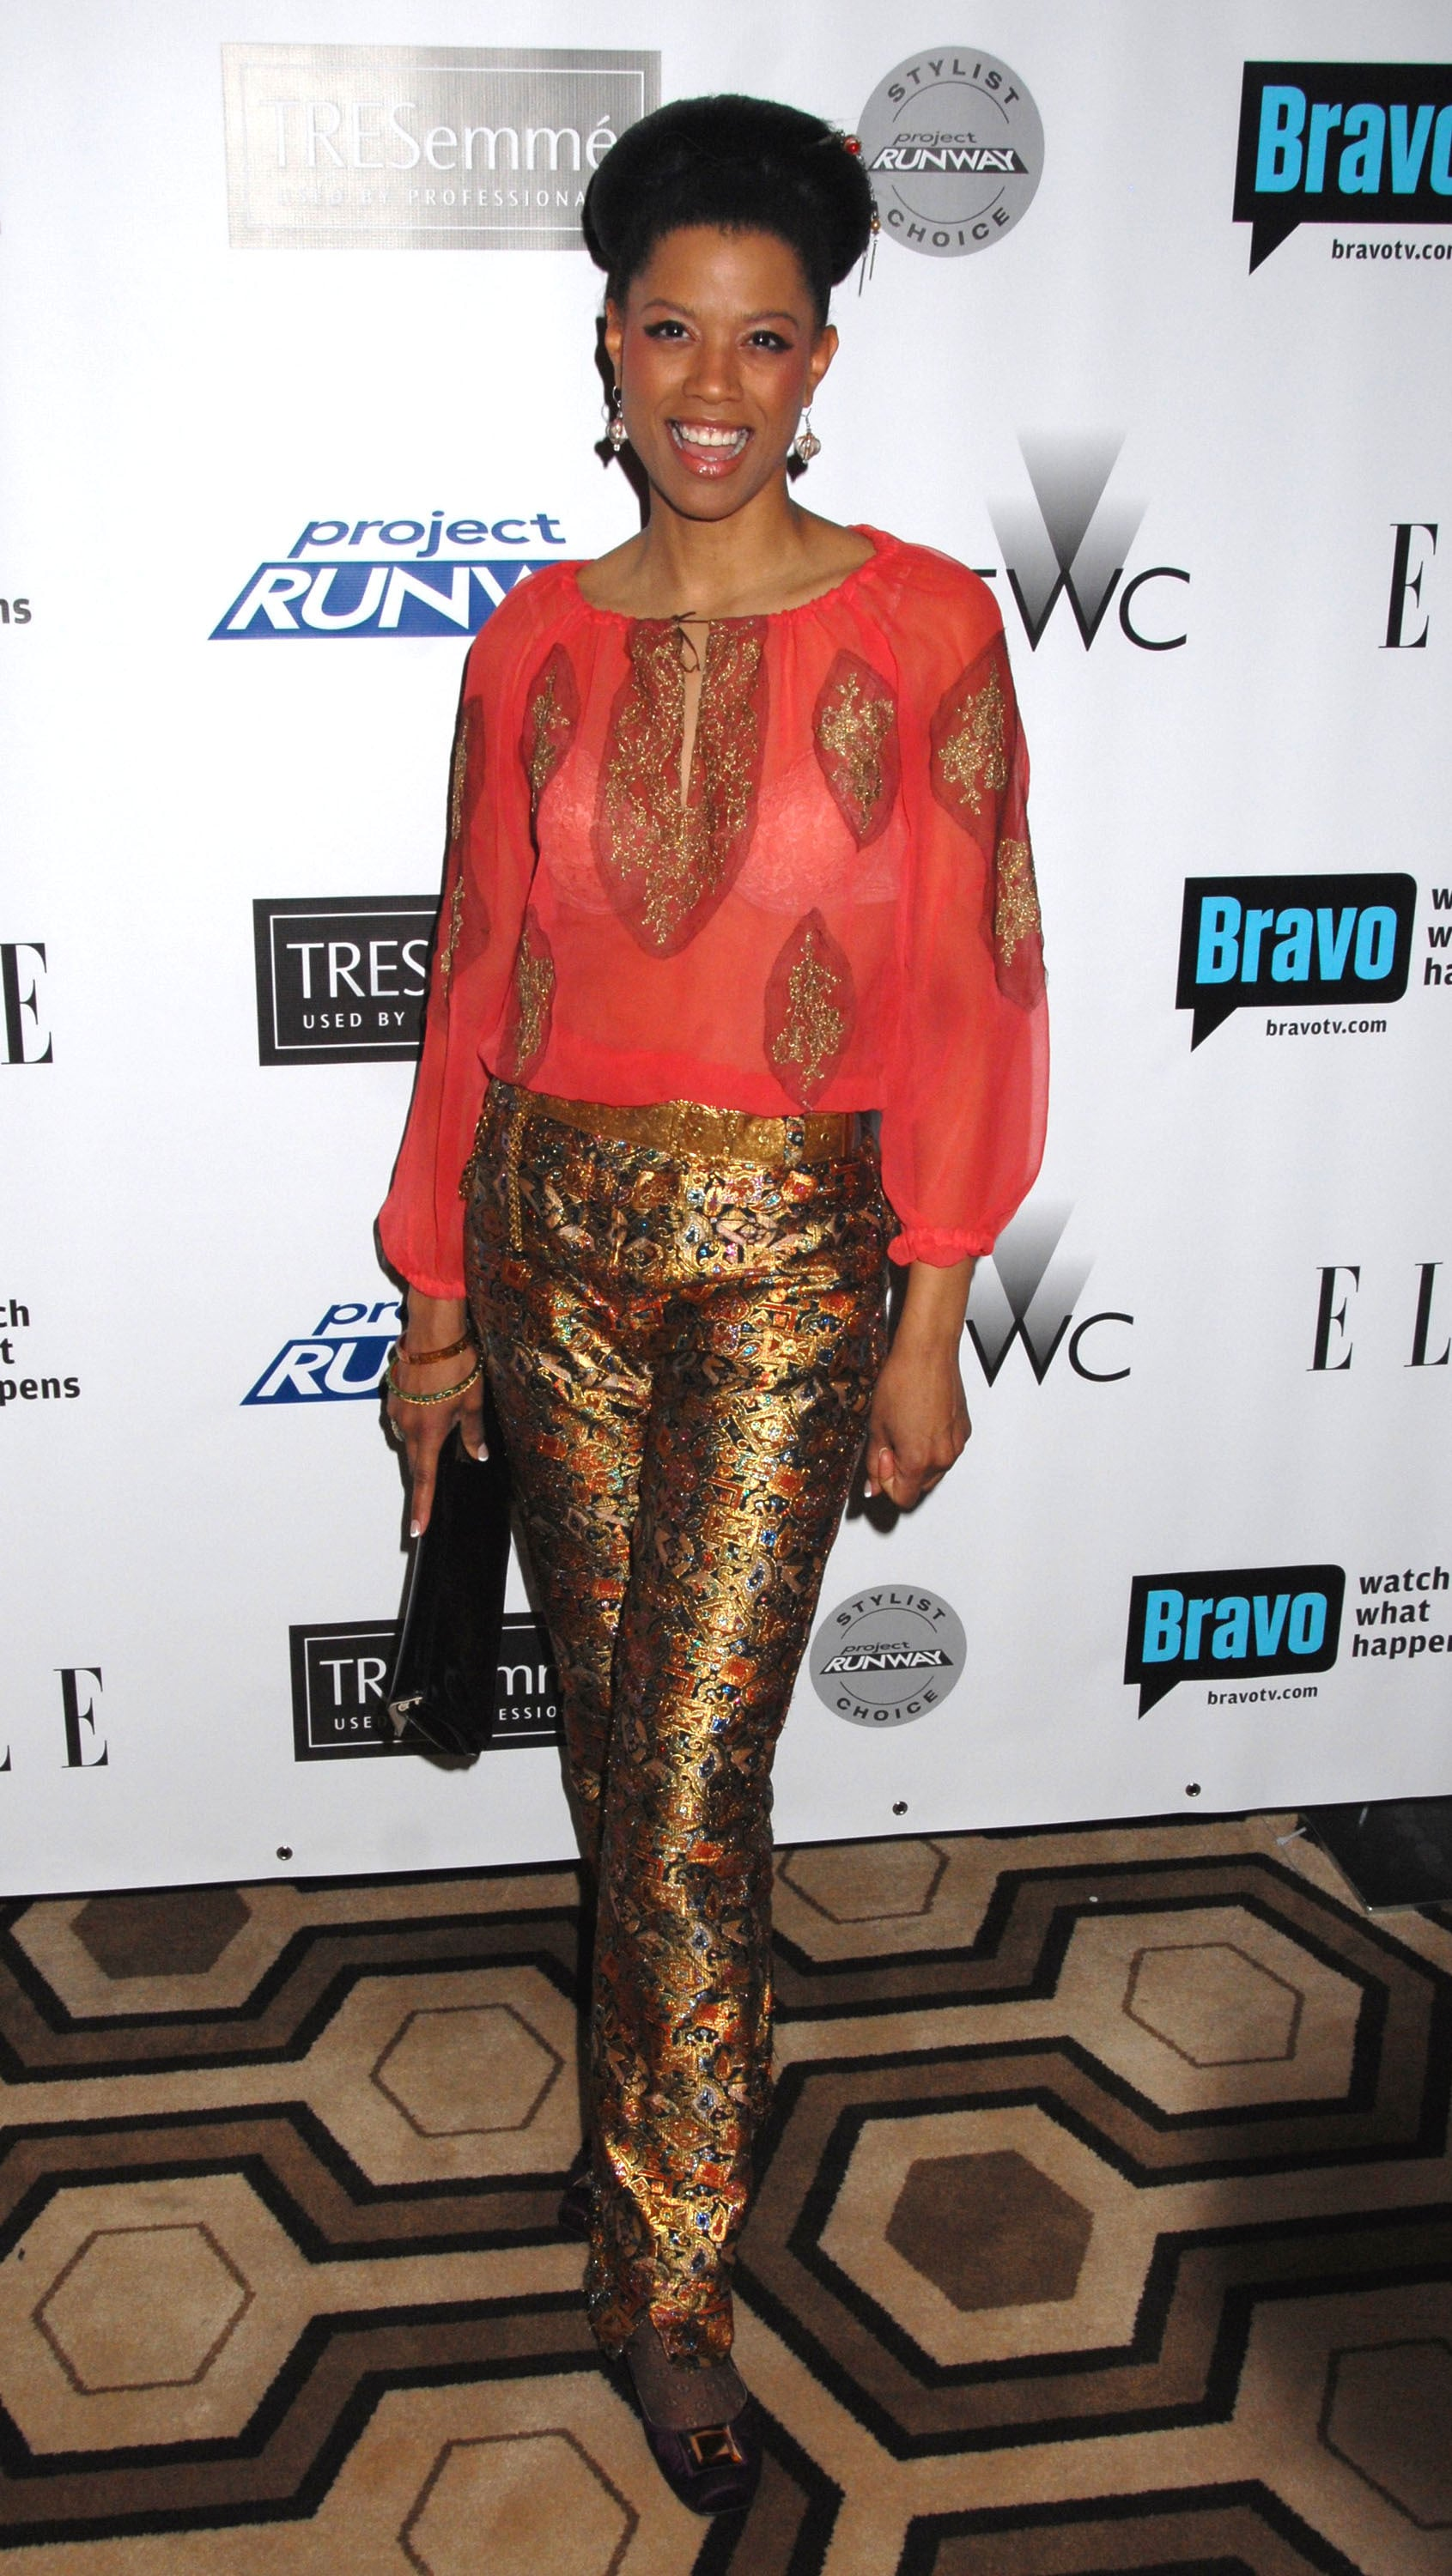 Fab Flash: Newest Project Runway Alumni Party On